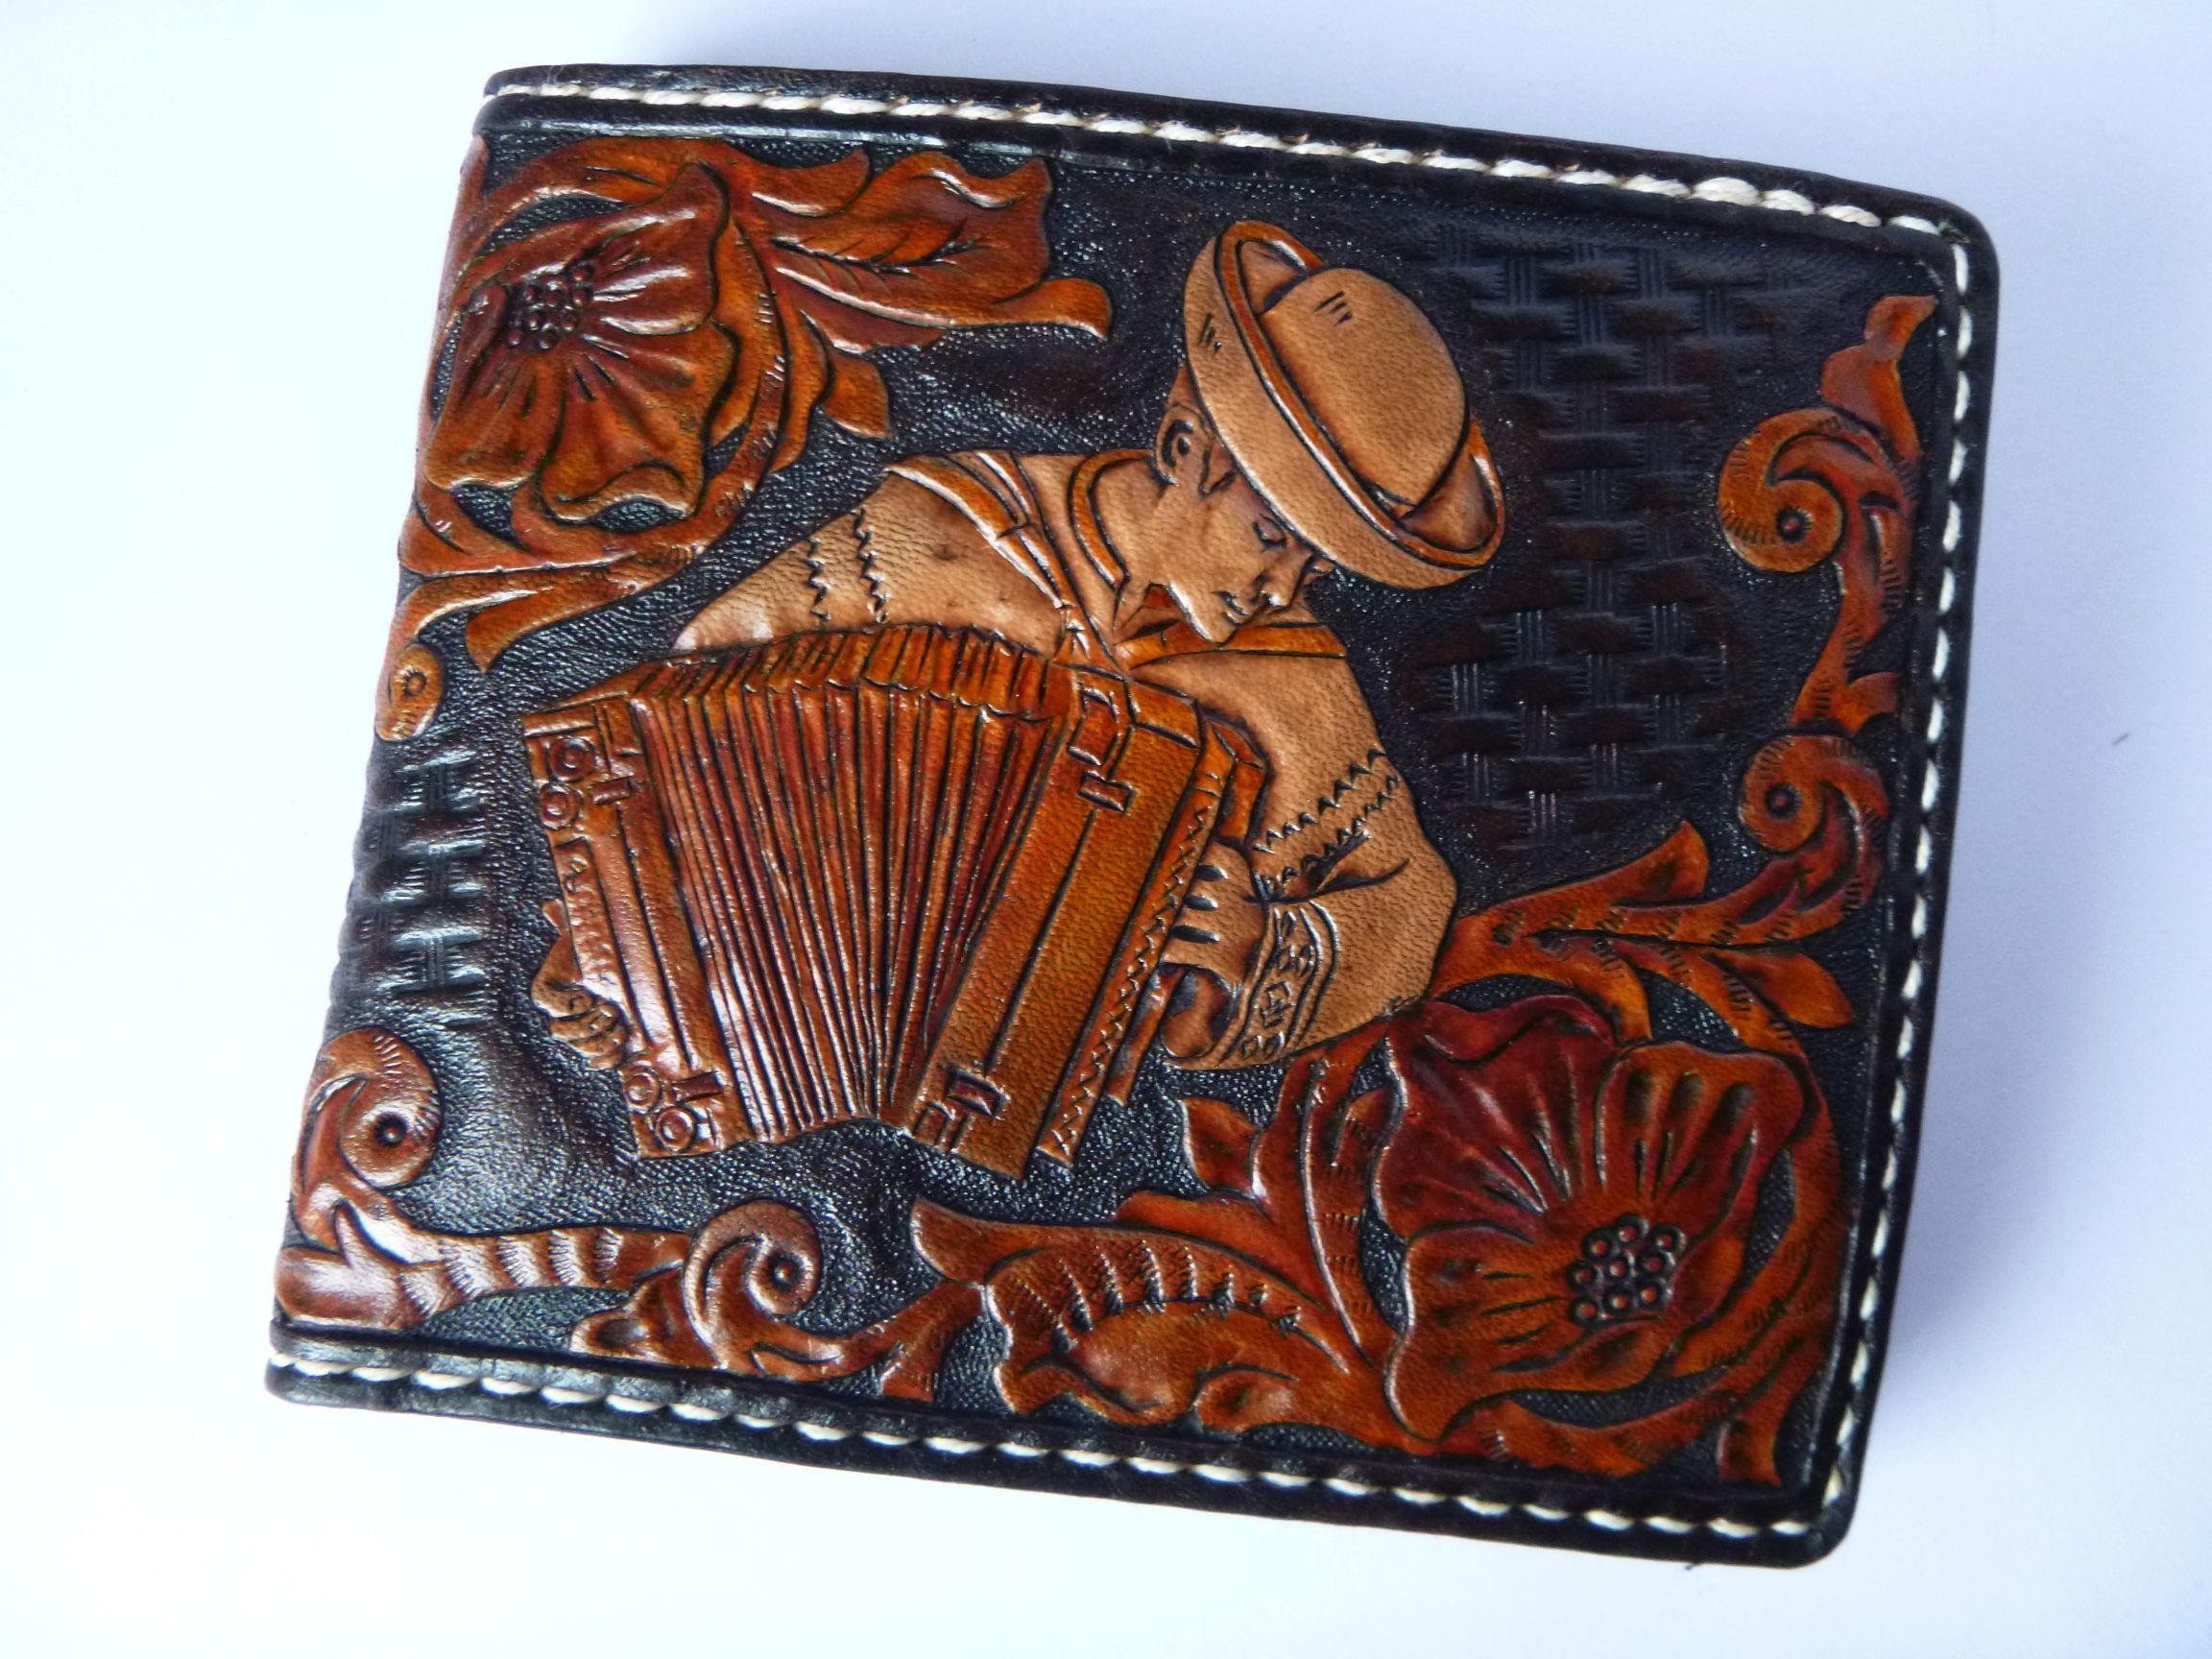 Men's 3D Genuine Leather Wallet, Hand-Carved, Hand-Painted, Leather Carving, Custom wallet, Personalized wallet, Accordionist, Accordion, Your Initials